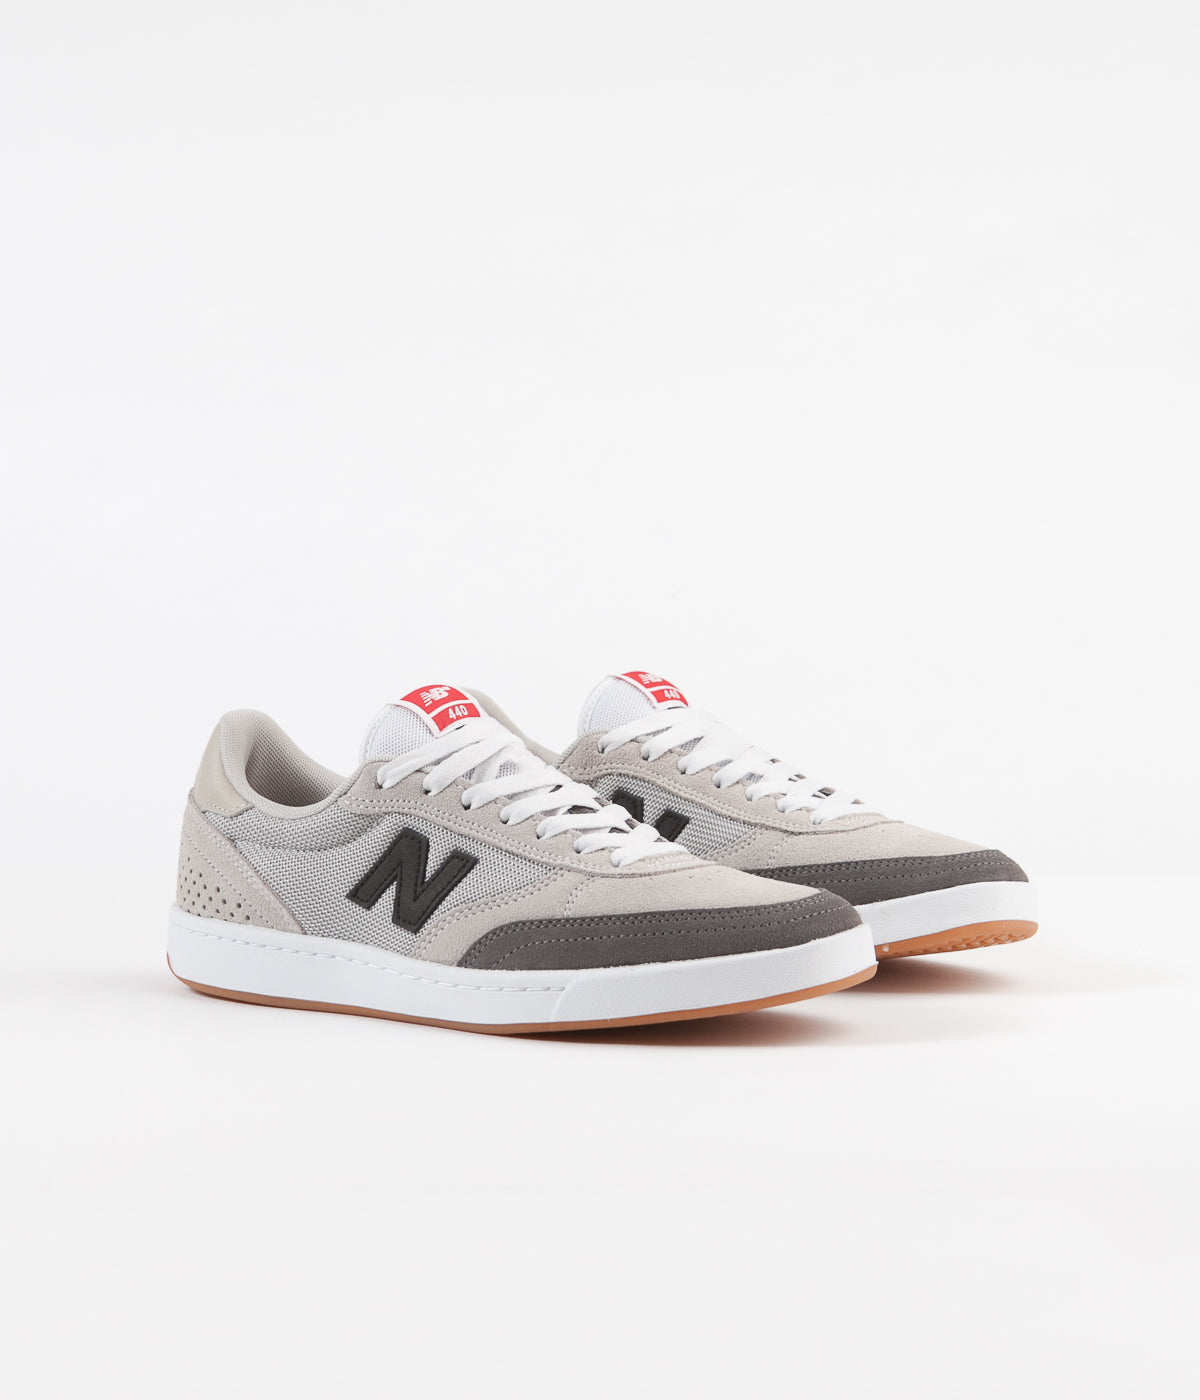 New Balance Numeric 440 Shoes - Clay Grey / Black